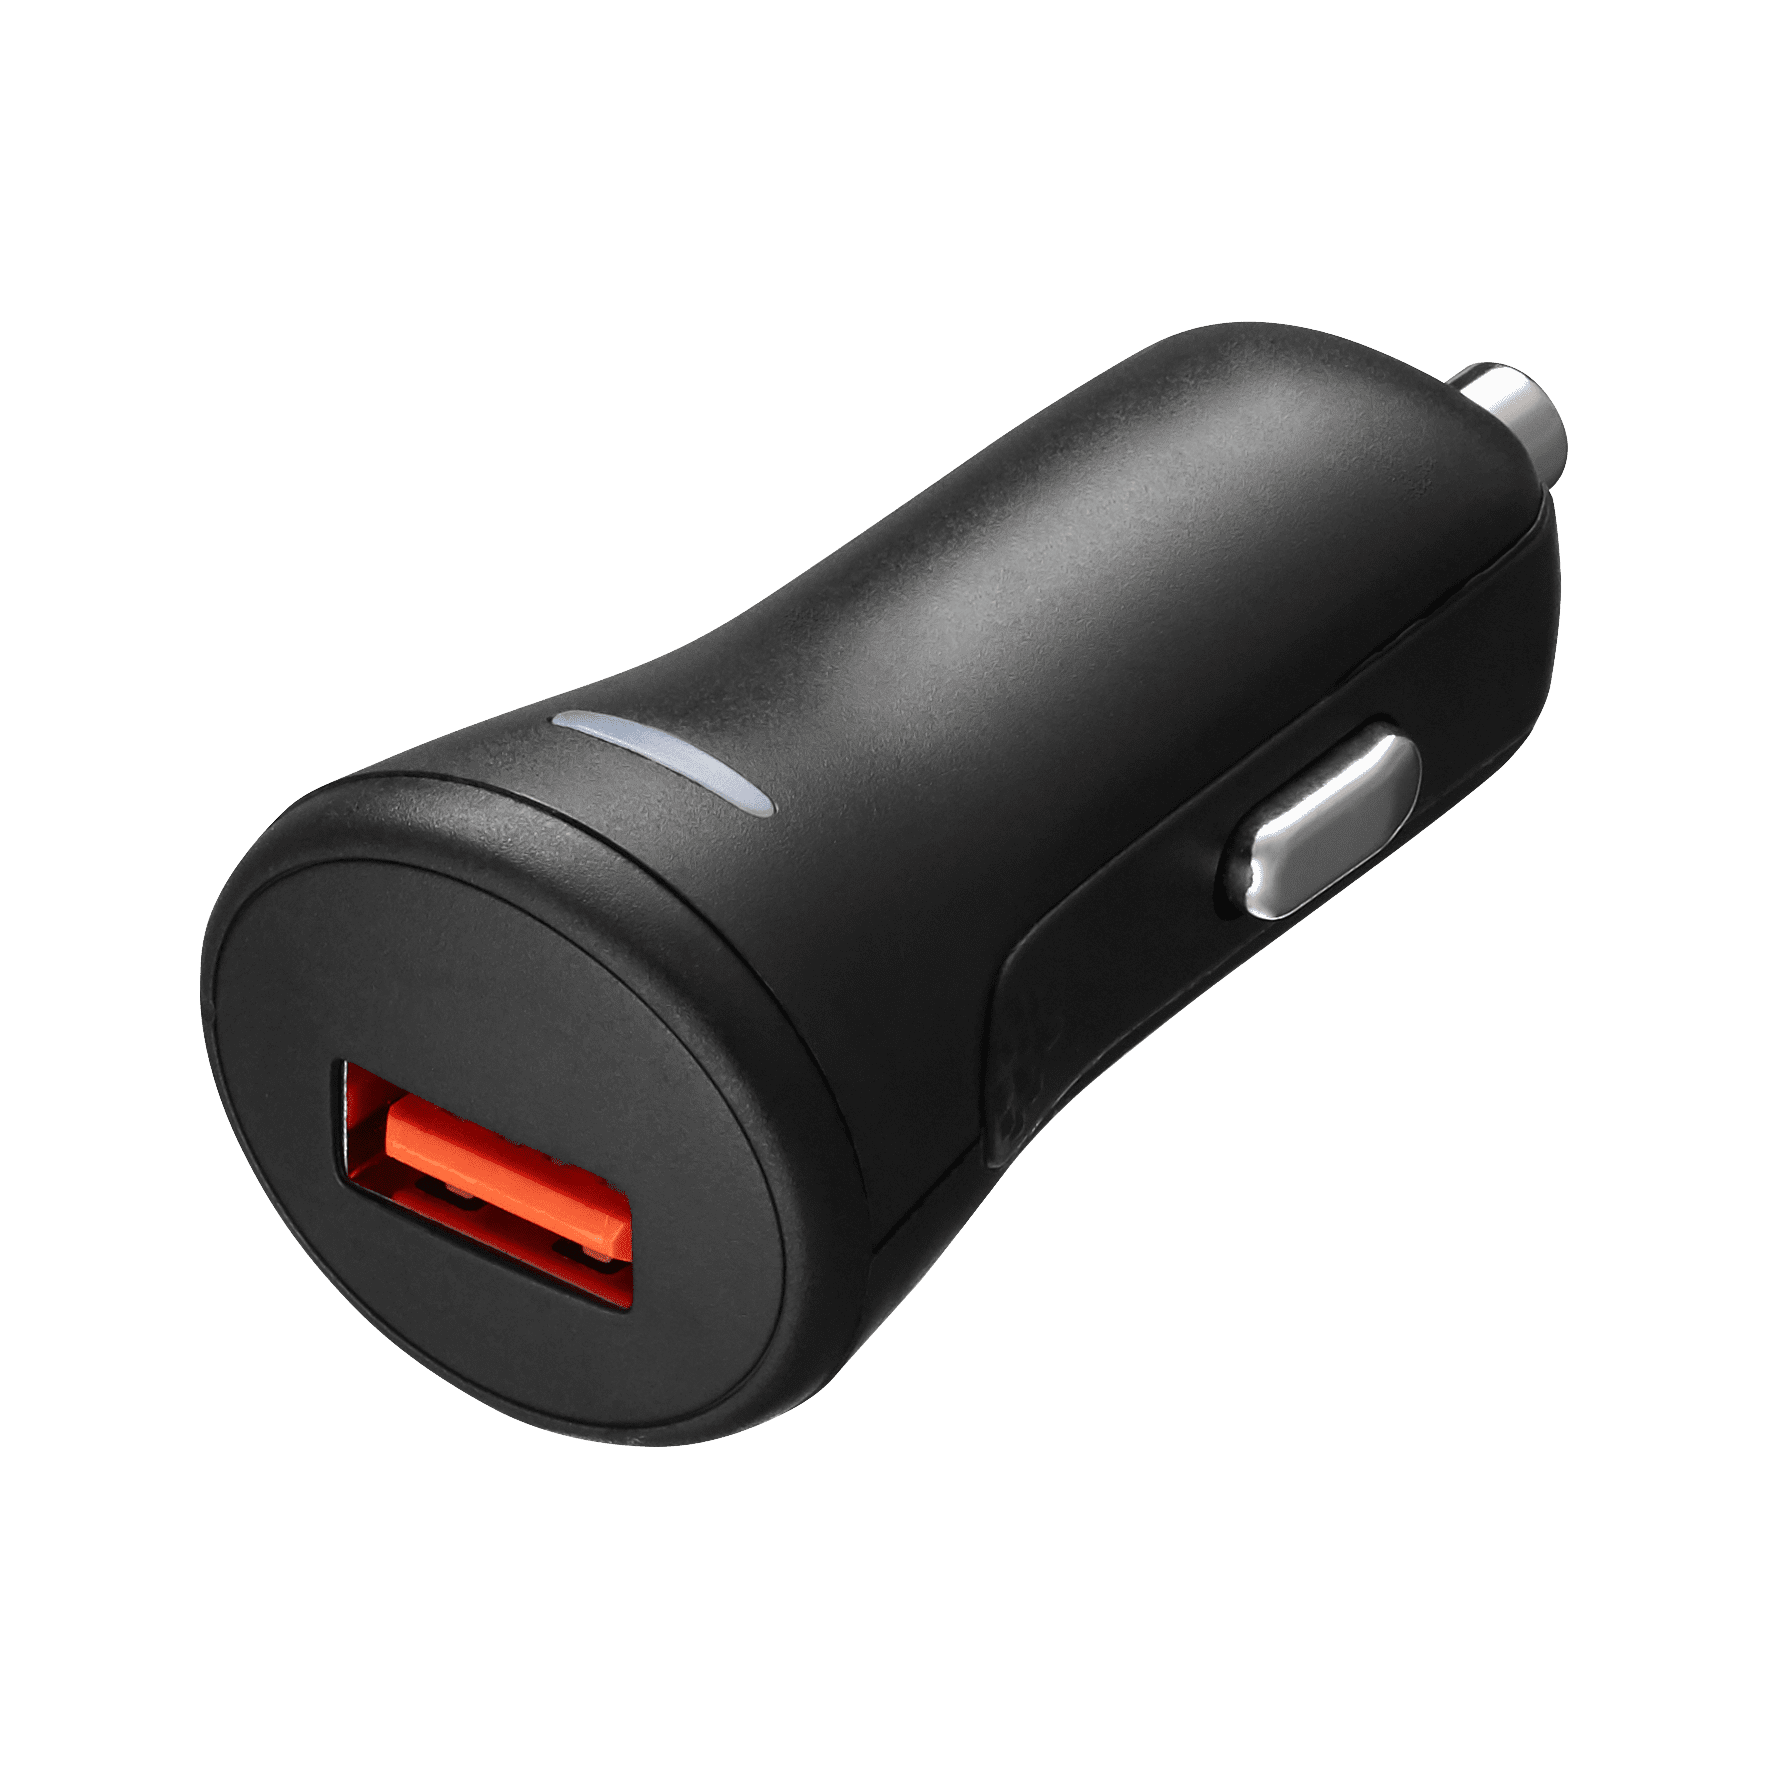 TPQ-305 Single USB port with LED quick charge 3.0 Car charger